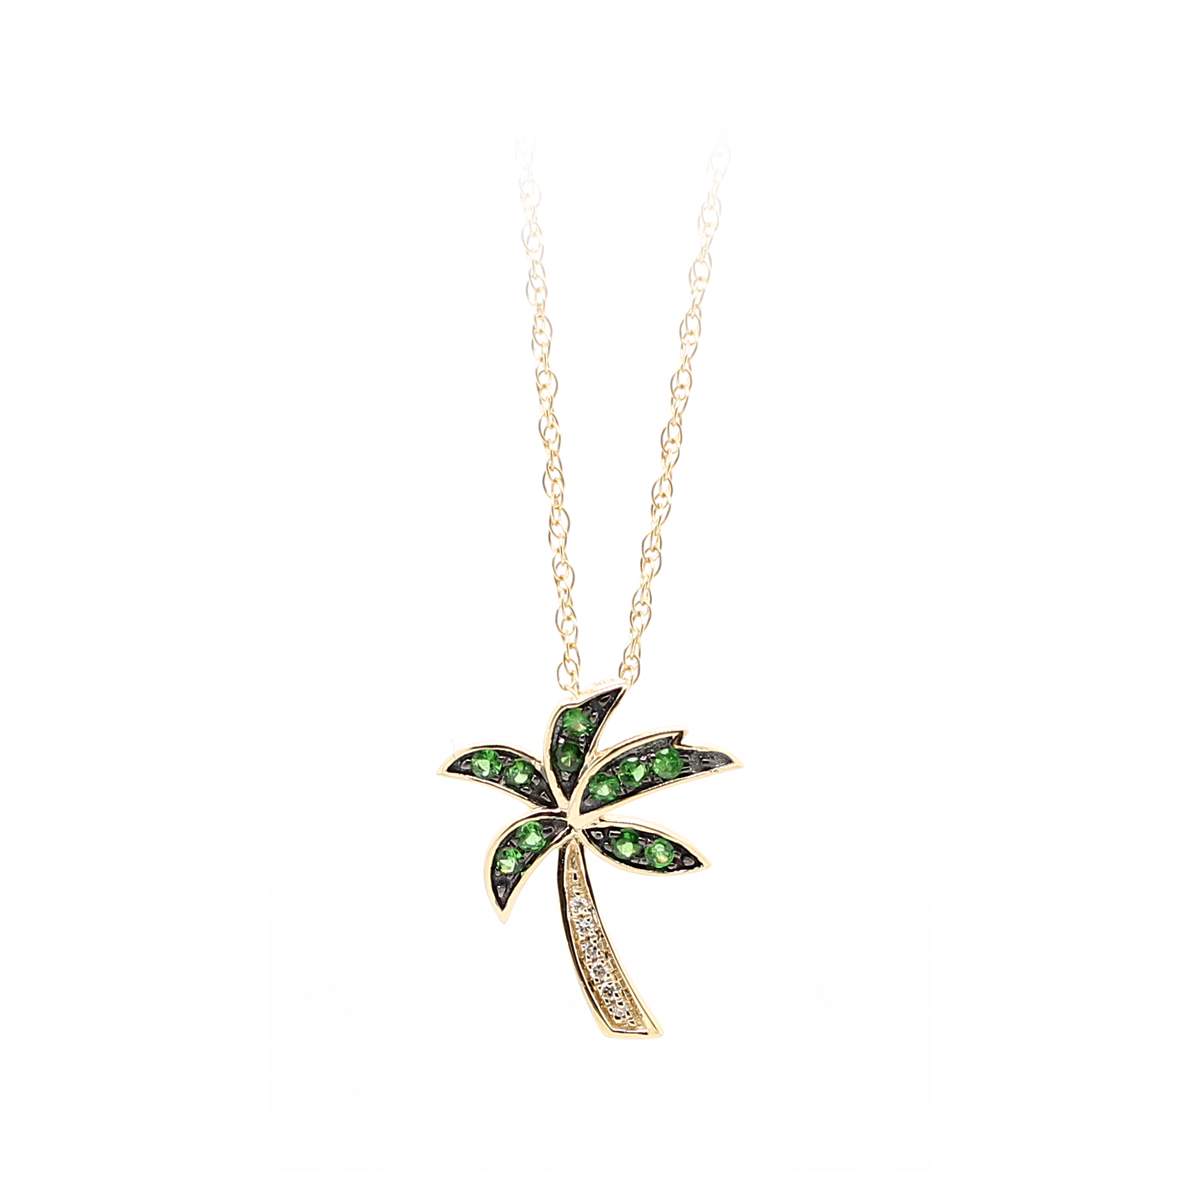 14 Karat Yellow Gold Tsavorite and Diamond Palm Tree Pendant Necklace